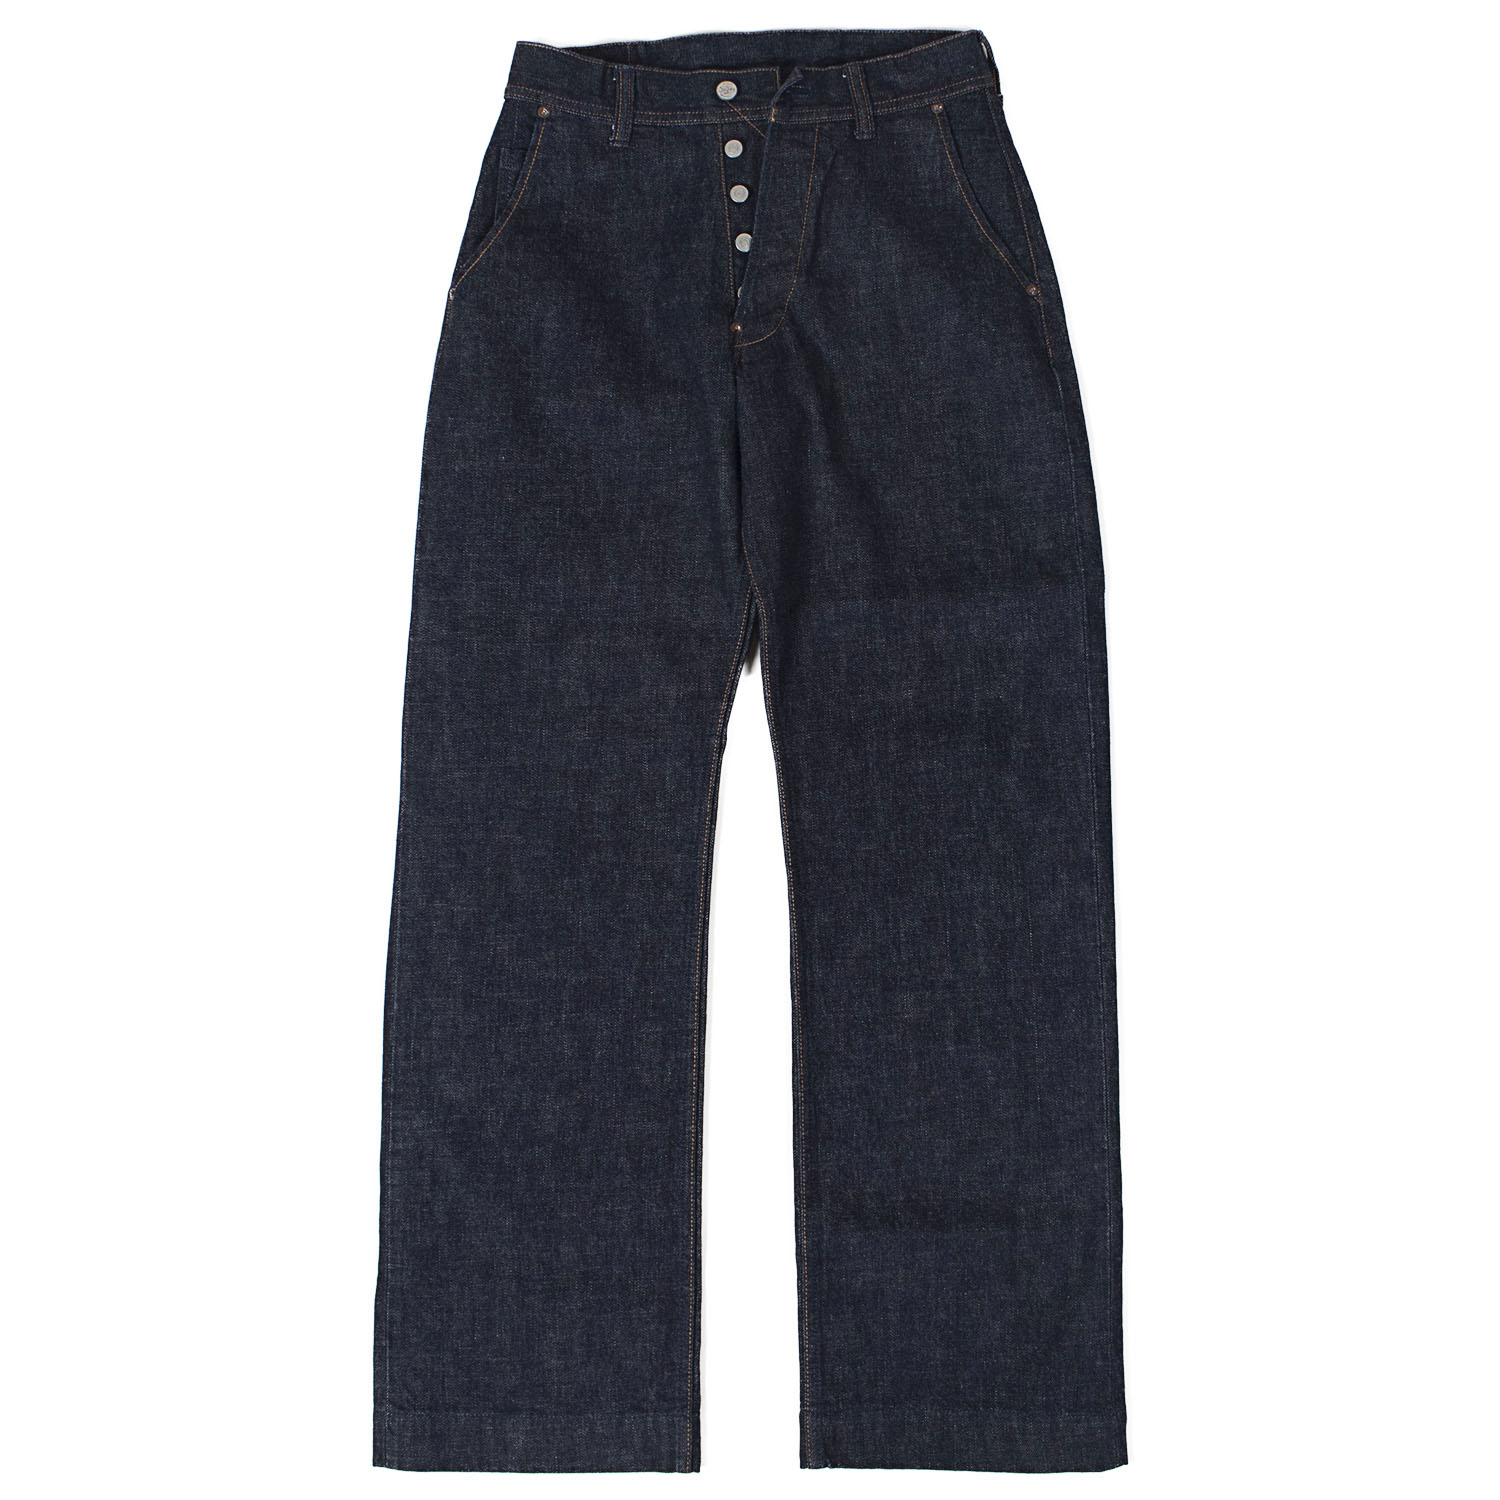 1504 Authentic Denim Early